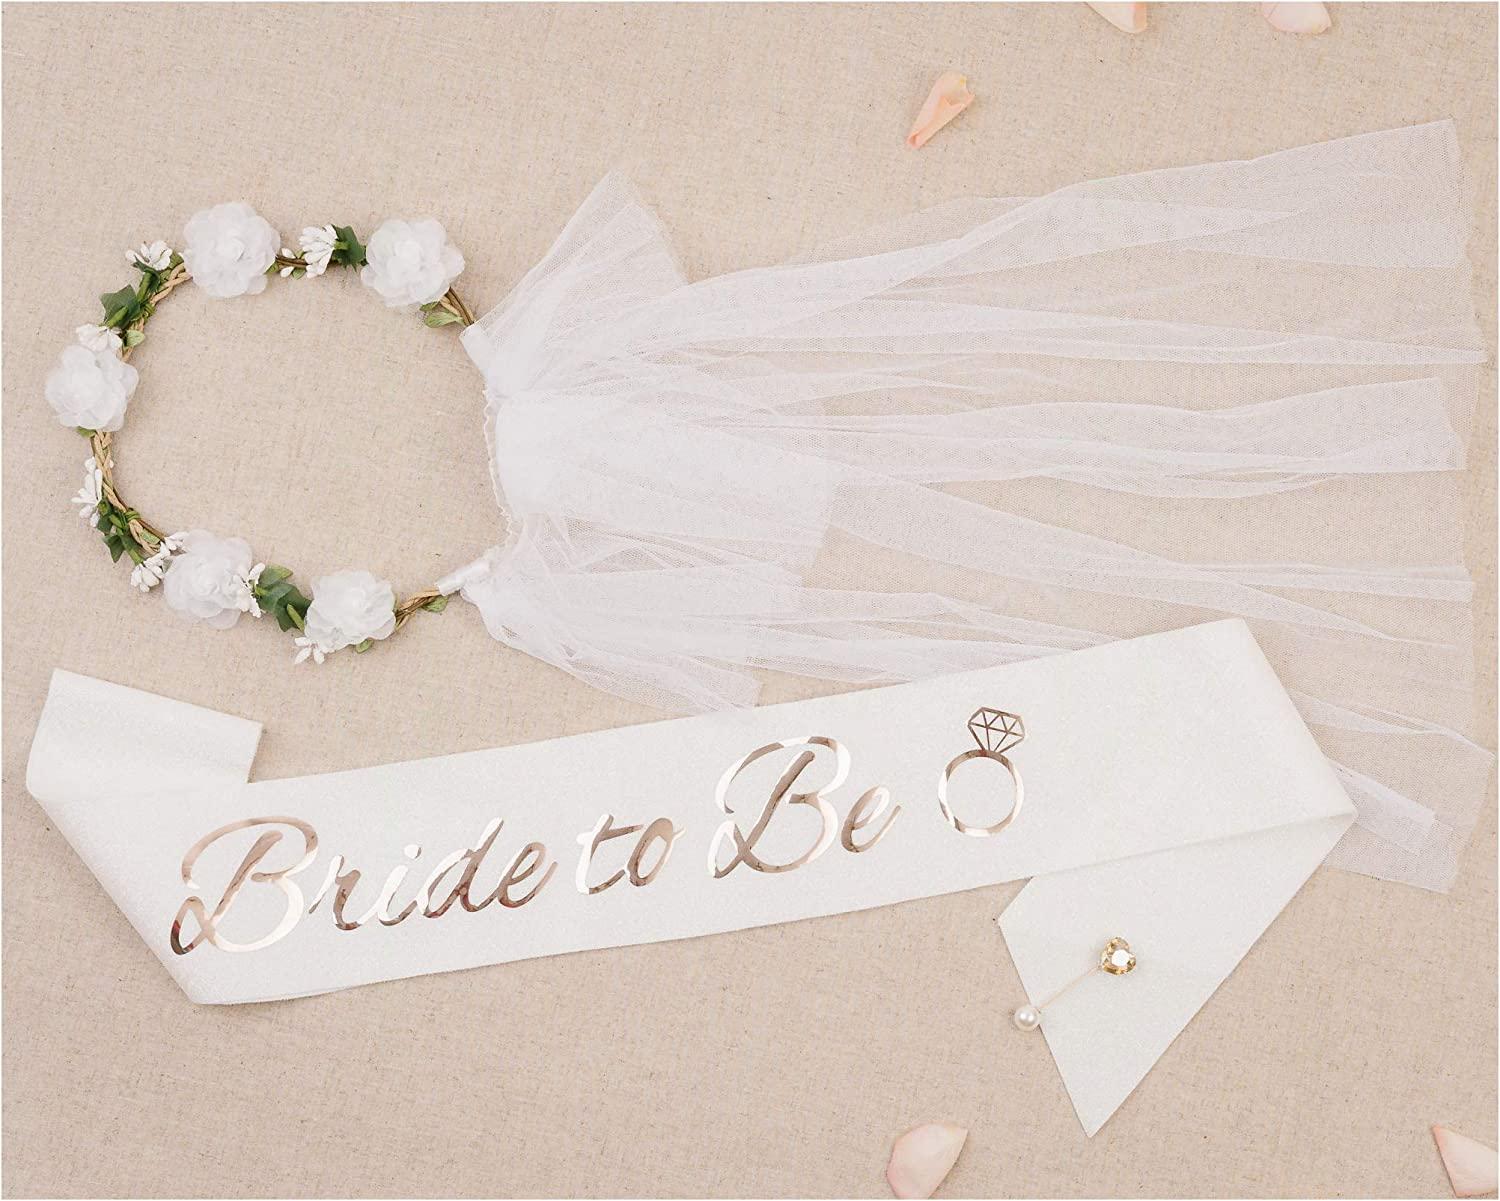 PapaKit Premium Bride to Be Party Sash, Floral Veil & Jewelry Pin Set, Glitter Sparkling Pearl White   Bachelorette Bridal Shower Engagement Wedding Party Favor Gift Decoration Supply